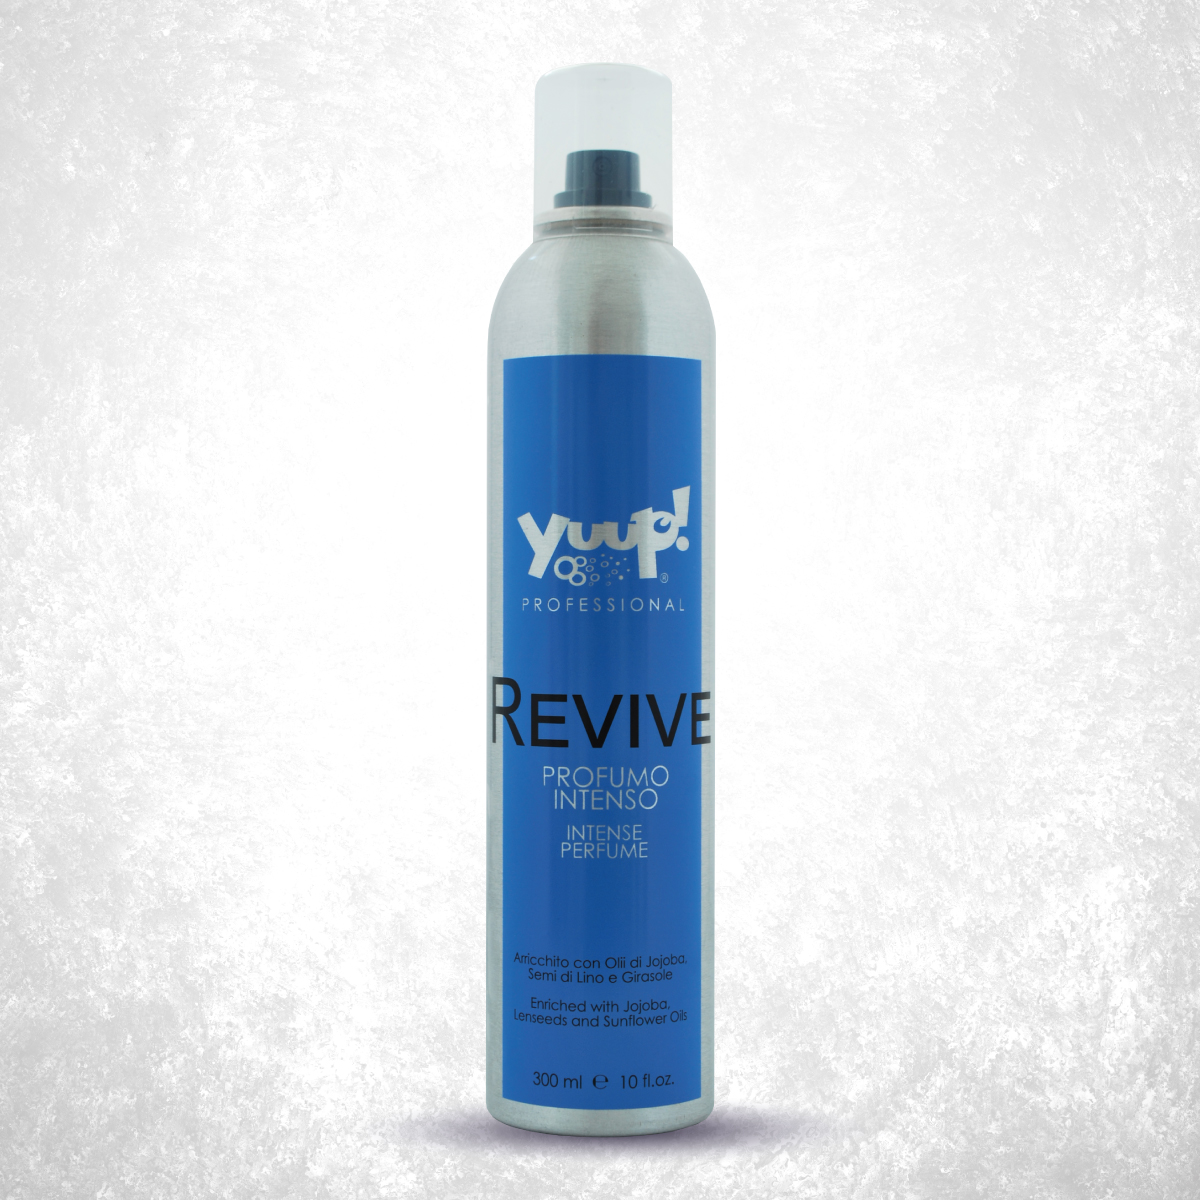 Yuup Revive Intense Perfume